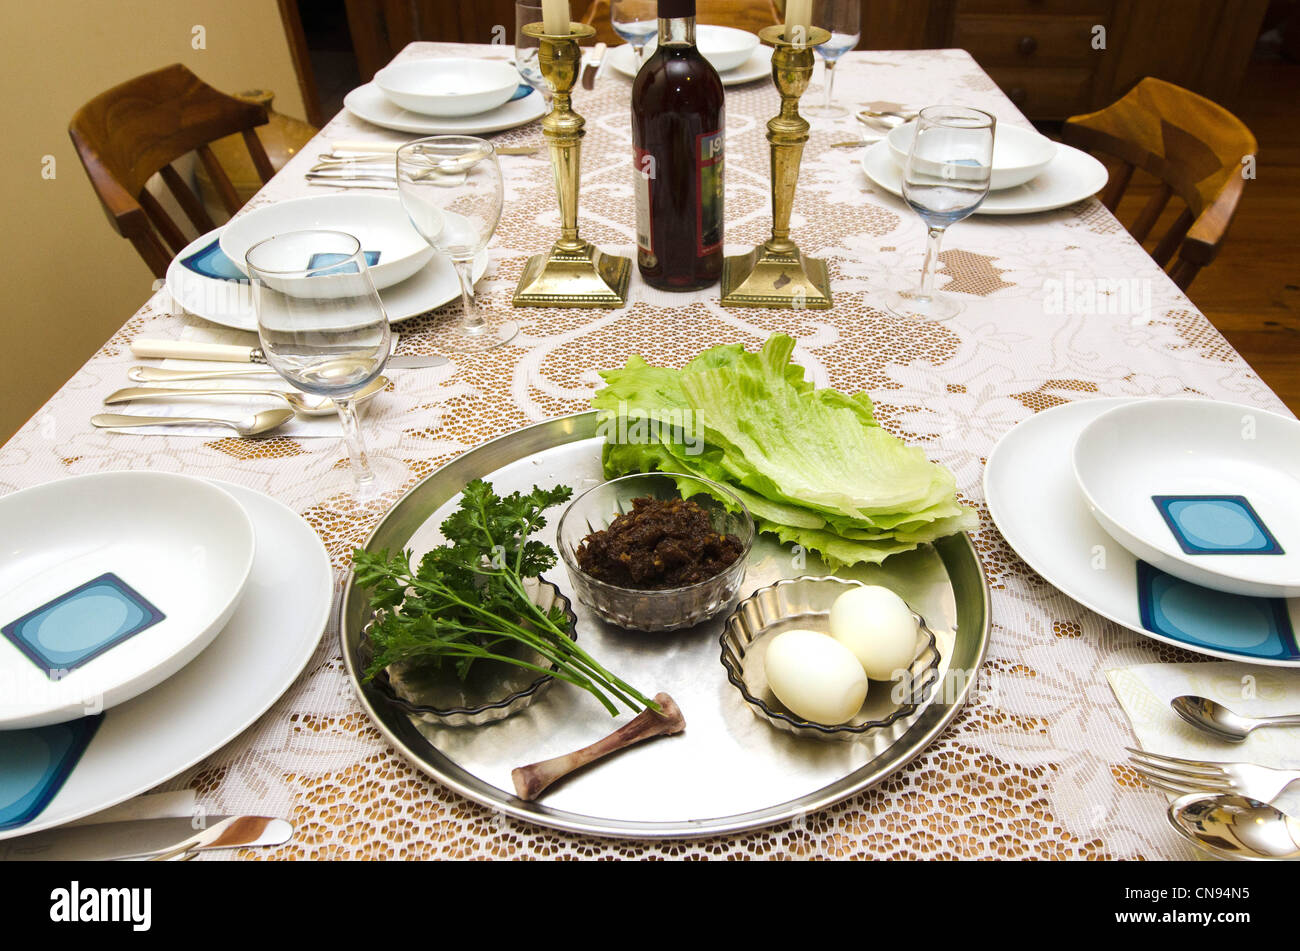 Passover Seder table. - Stock Image